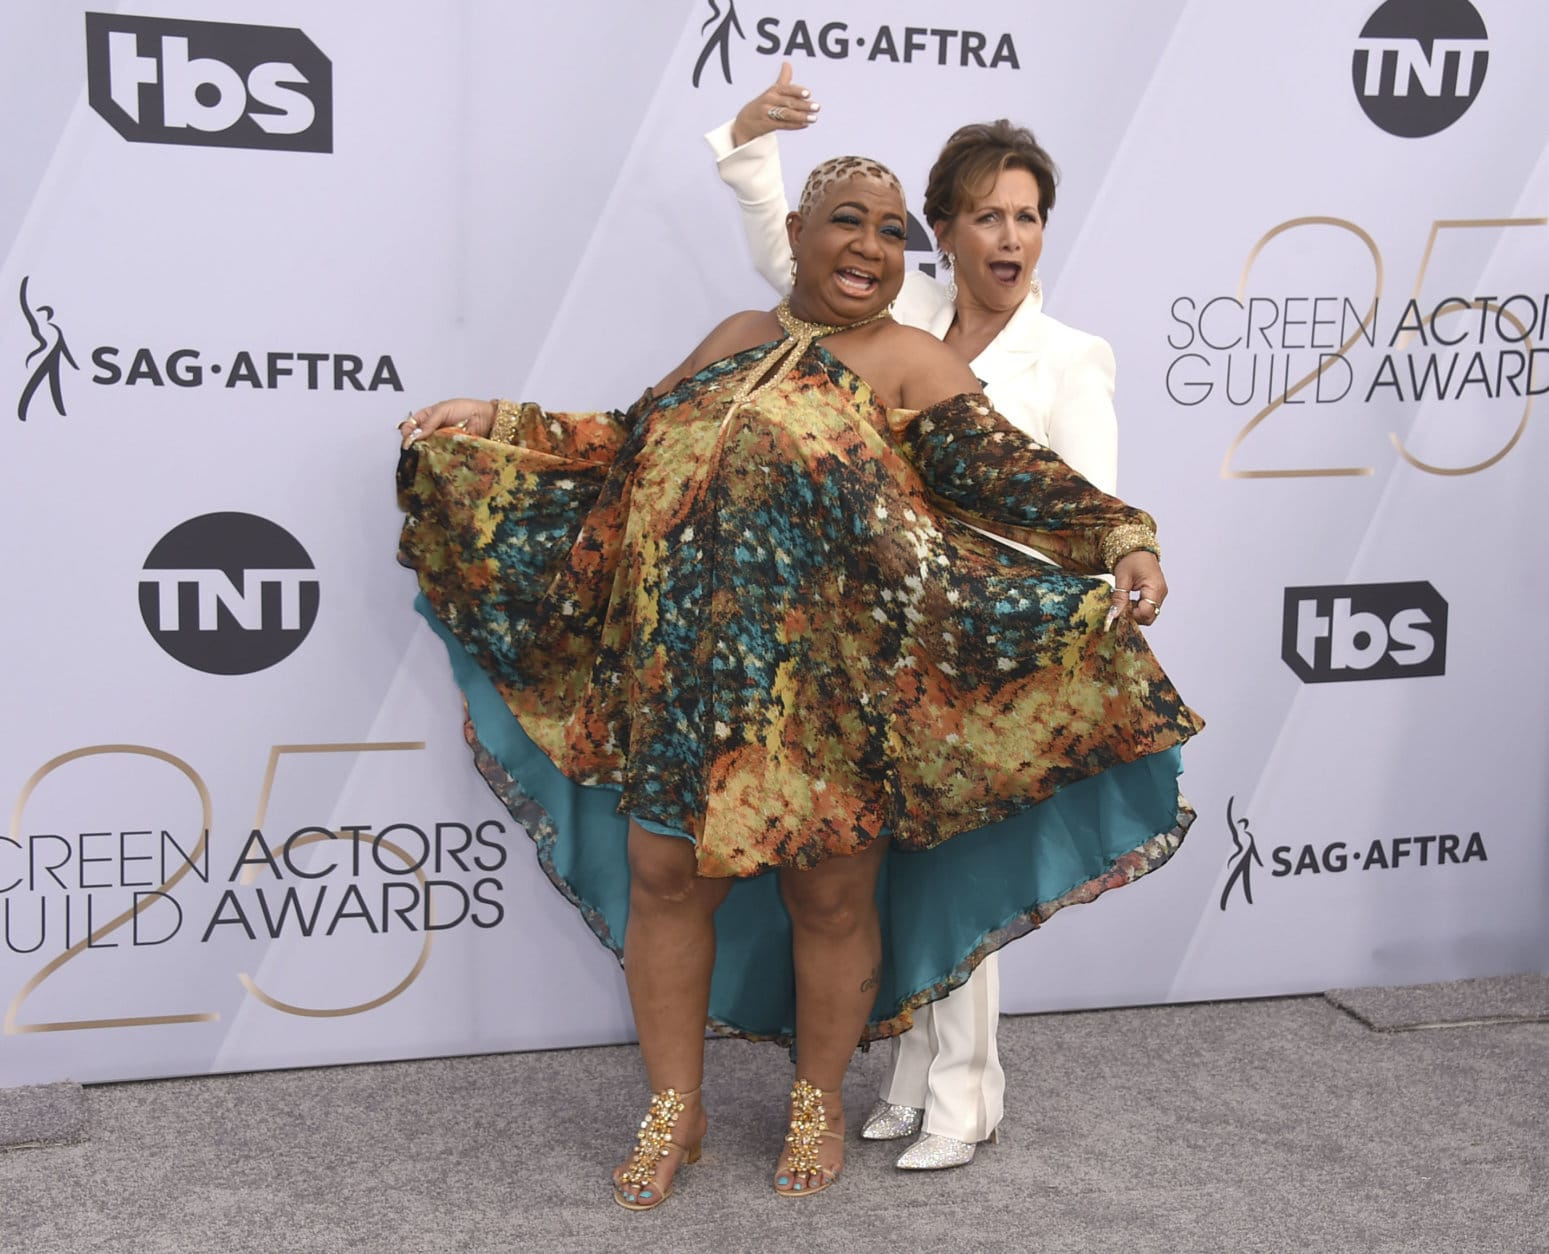 Luenell, left, and SAG-AFTRA President Gabrielle Carteris arrive at the 25th annual Screen Actors Guild Awards at the Shrine Auditorium & Expo Hall on Sunday, Jan. 27, 2019, in Los Angeles. (Photo by Jordan Strauss/Invision/AP)